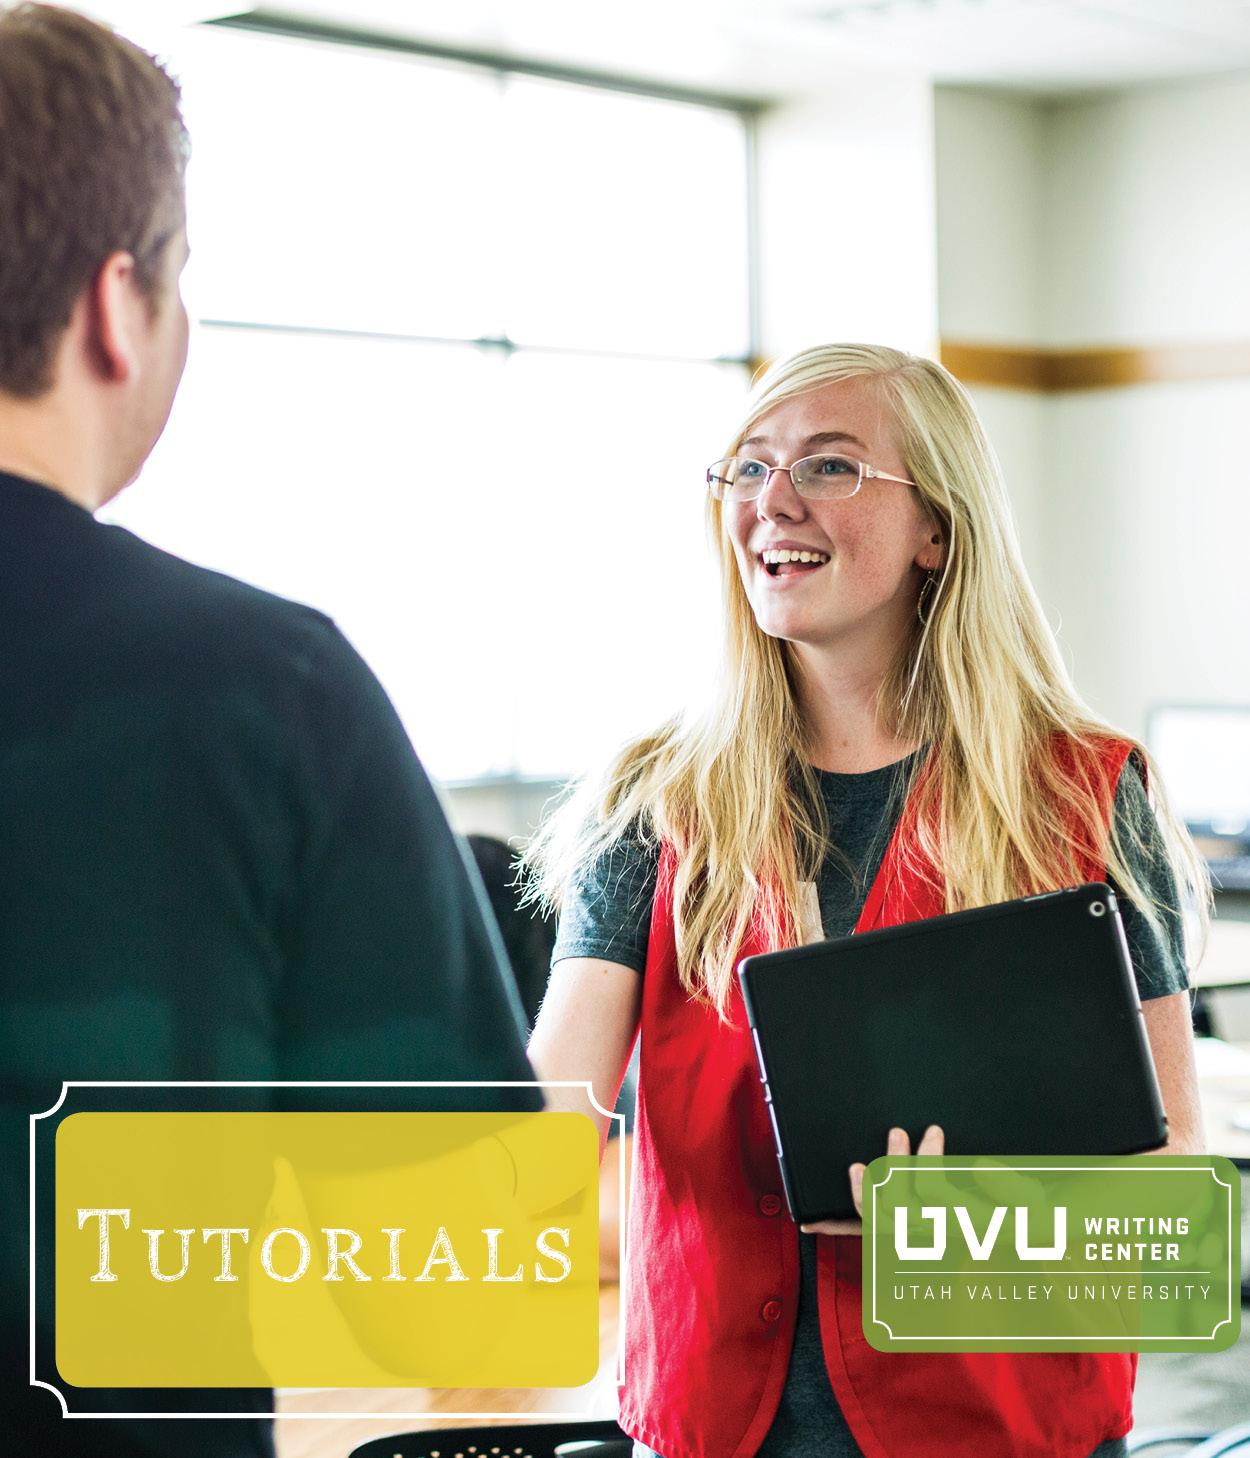 Image of tutor greeting a studentLink to Tutoring Services page